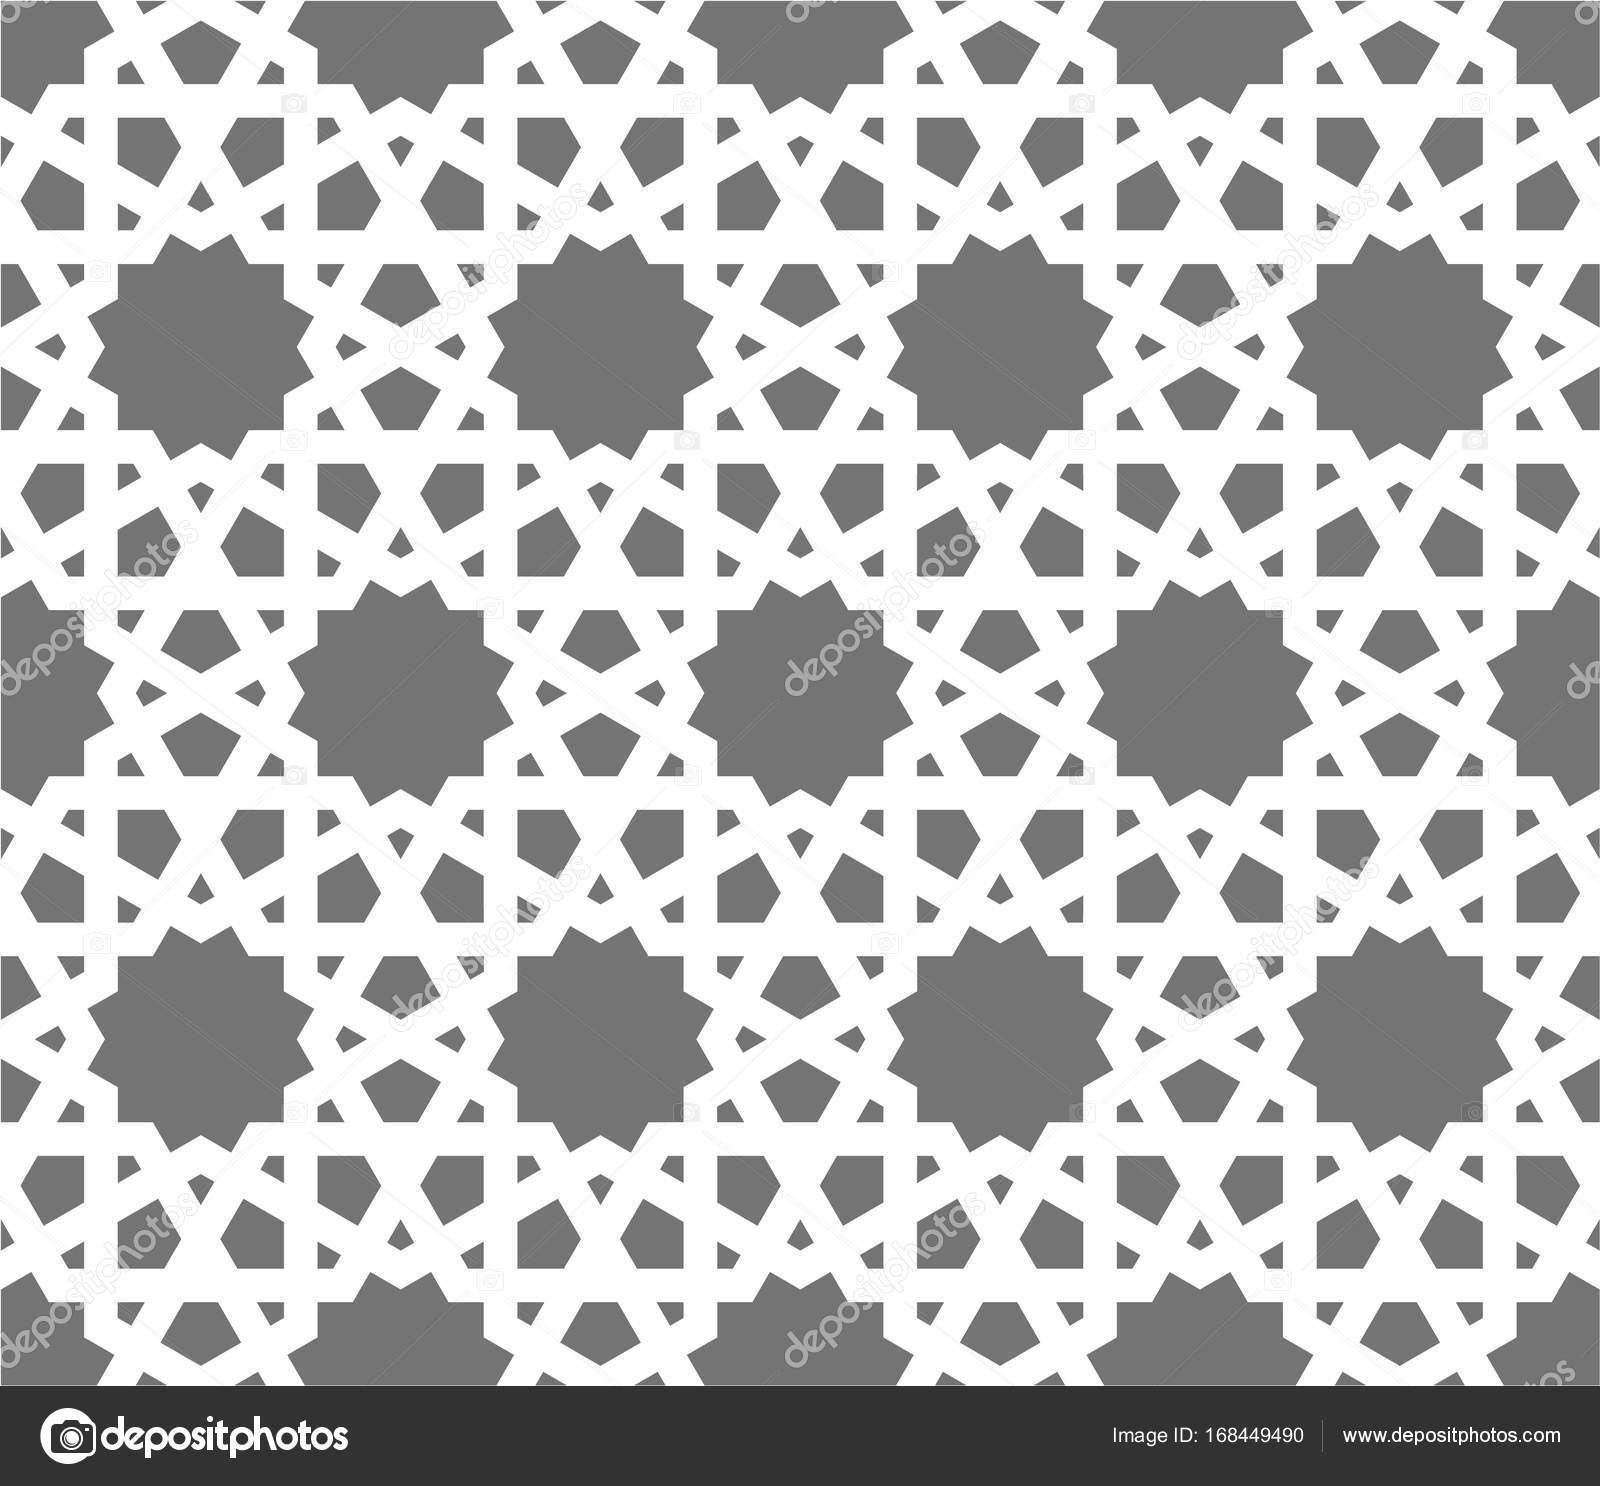 islamic seamless vector pattern white geometric ornaments based on traditional arabic art oriental muslim mosaic turkish arabian moroccan design on a dark background mosque decoration element stock vector c midsummerday 168449490 depositphotos